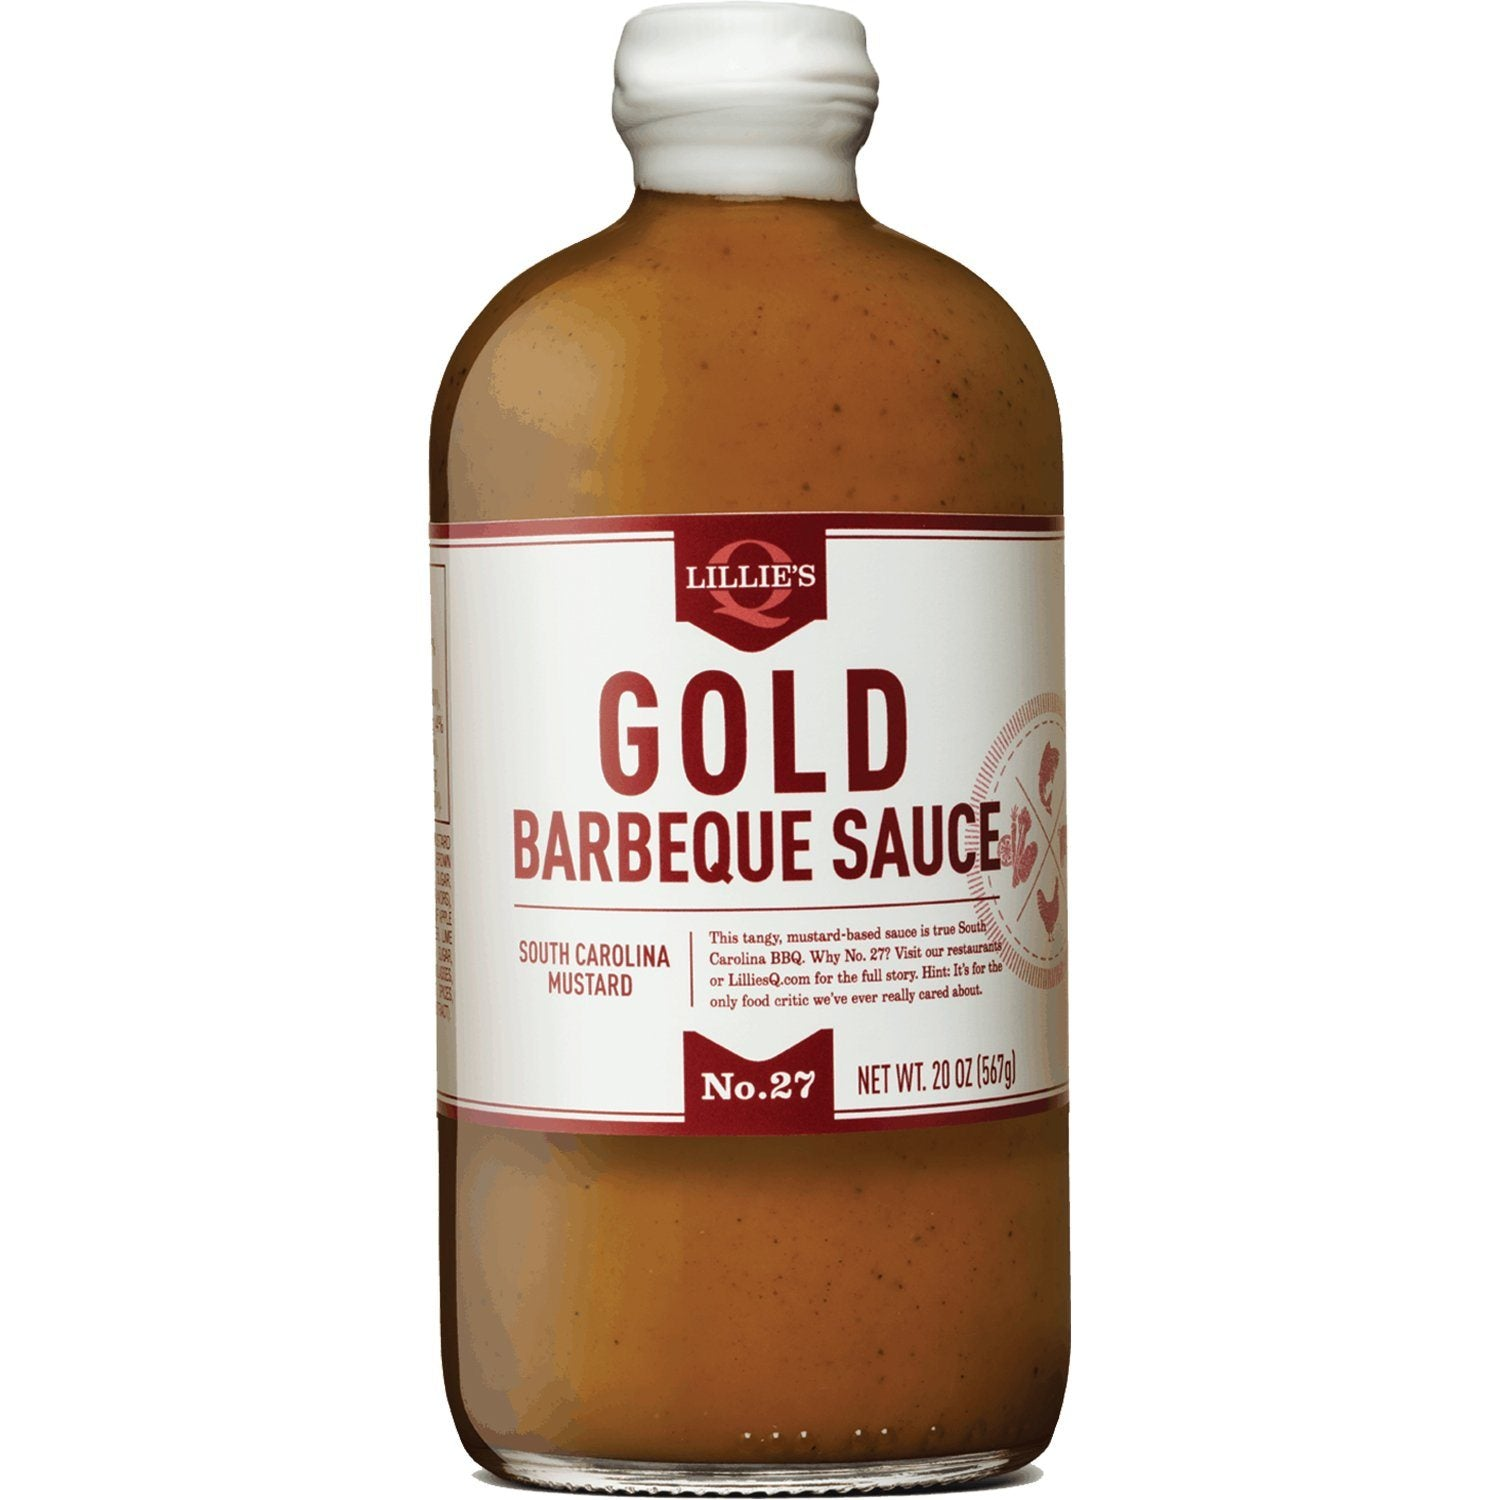 Lillie's Q Southern Barbeque Sauce Lillie's Q Gold South Carolina 20 Ounce